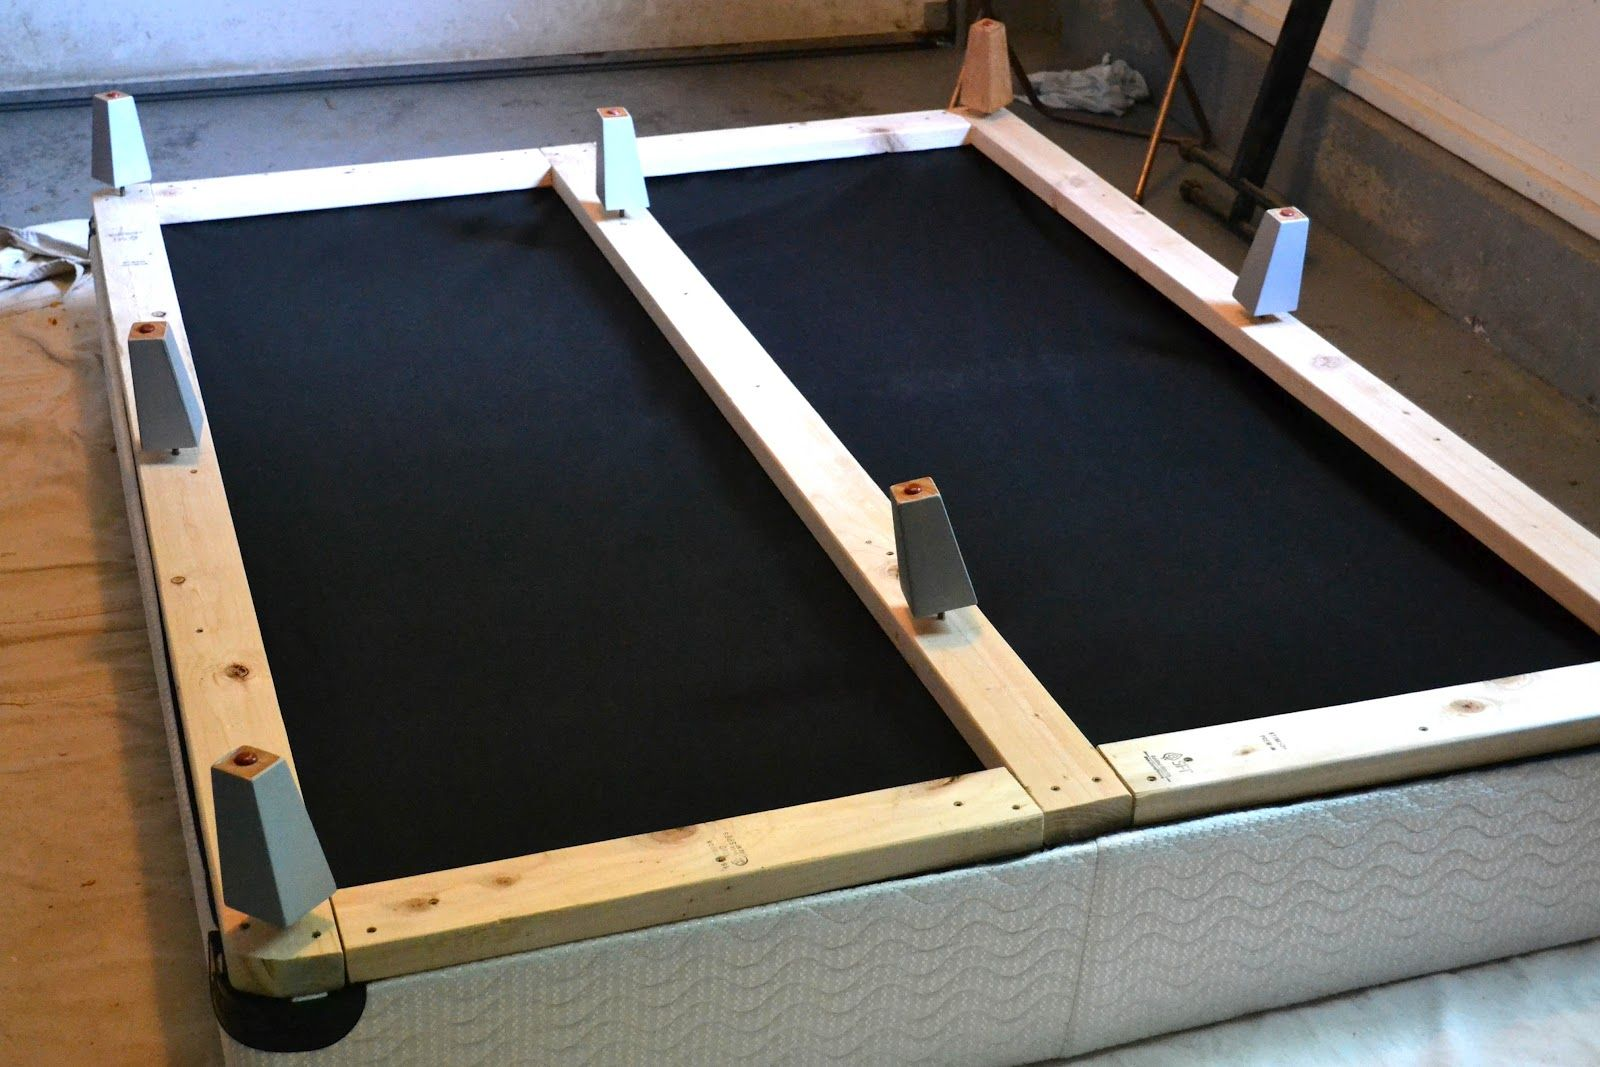 Add boards to bottom of box spring, cover in fabric, and